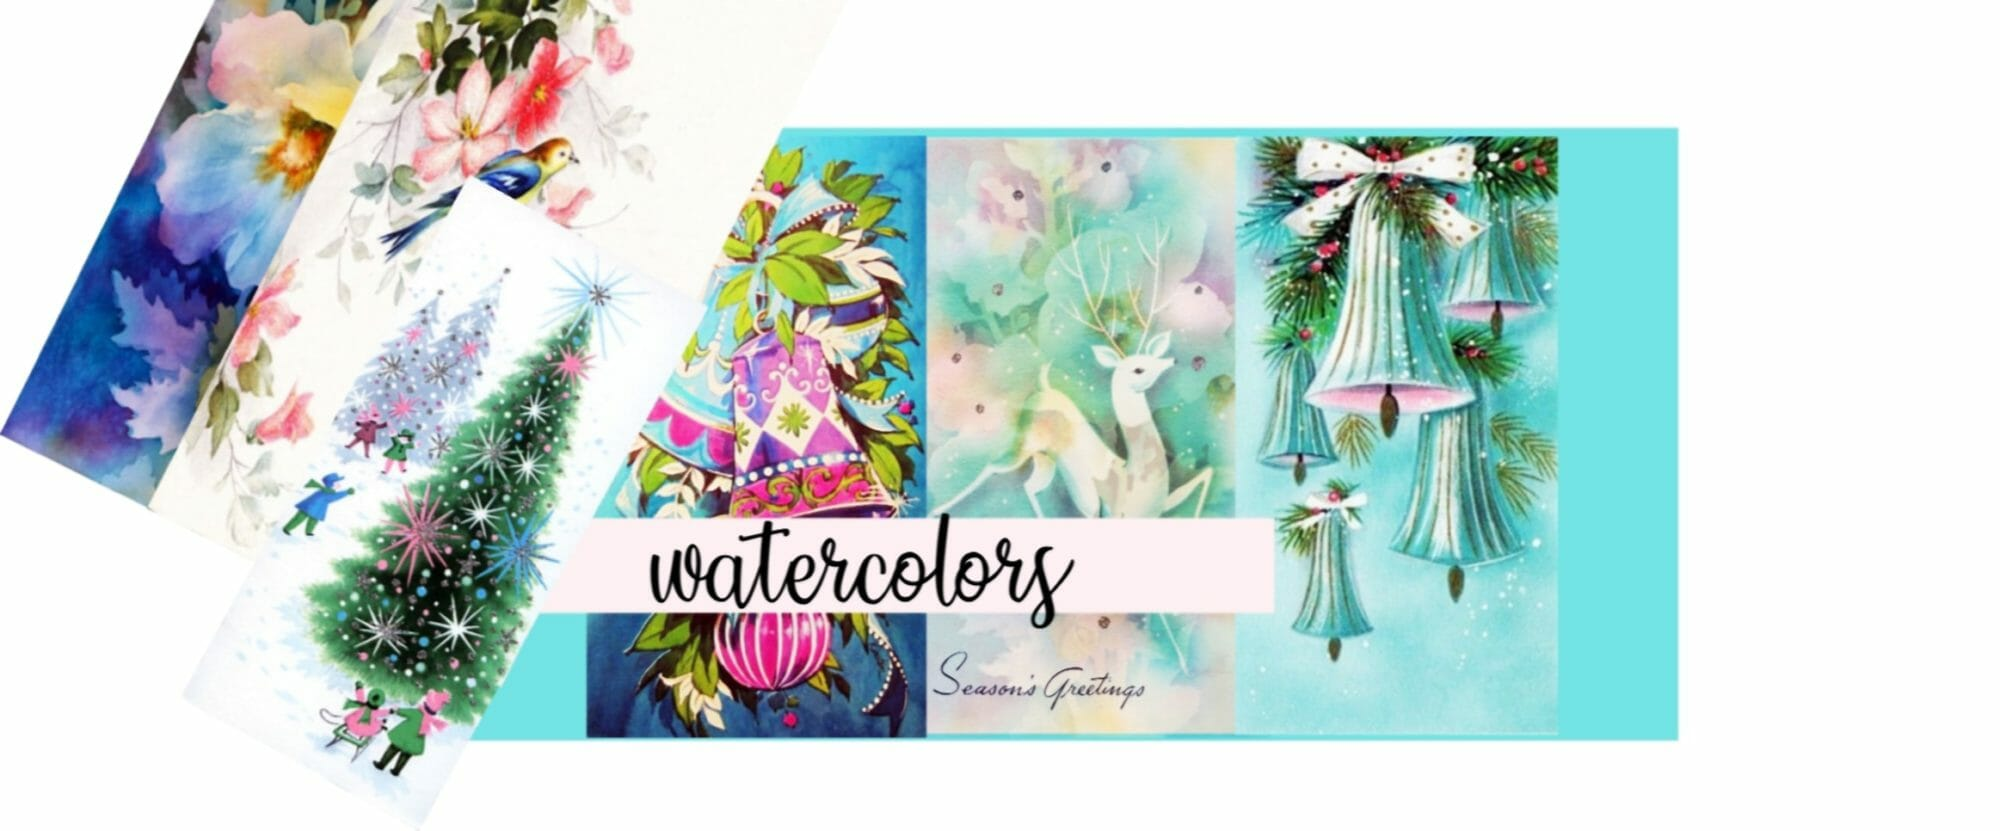 see-watercolor-works-by-muse